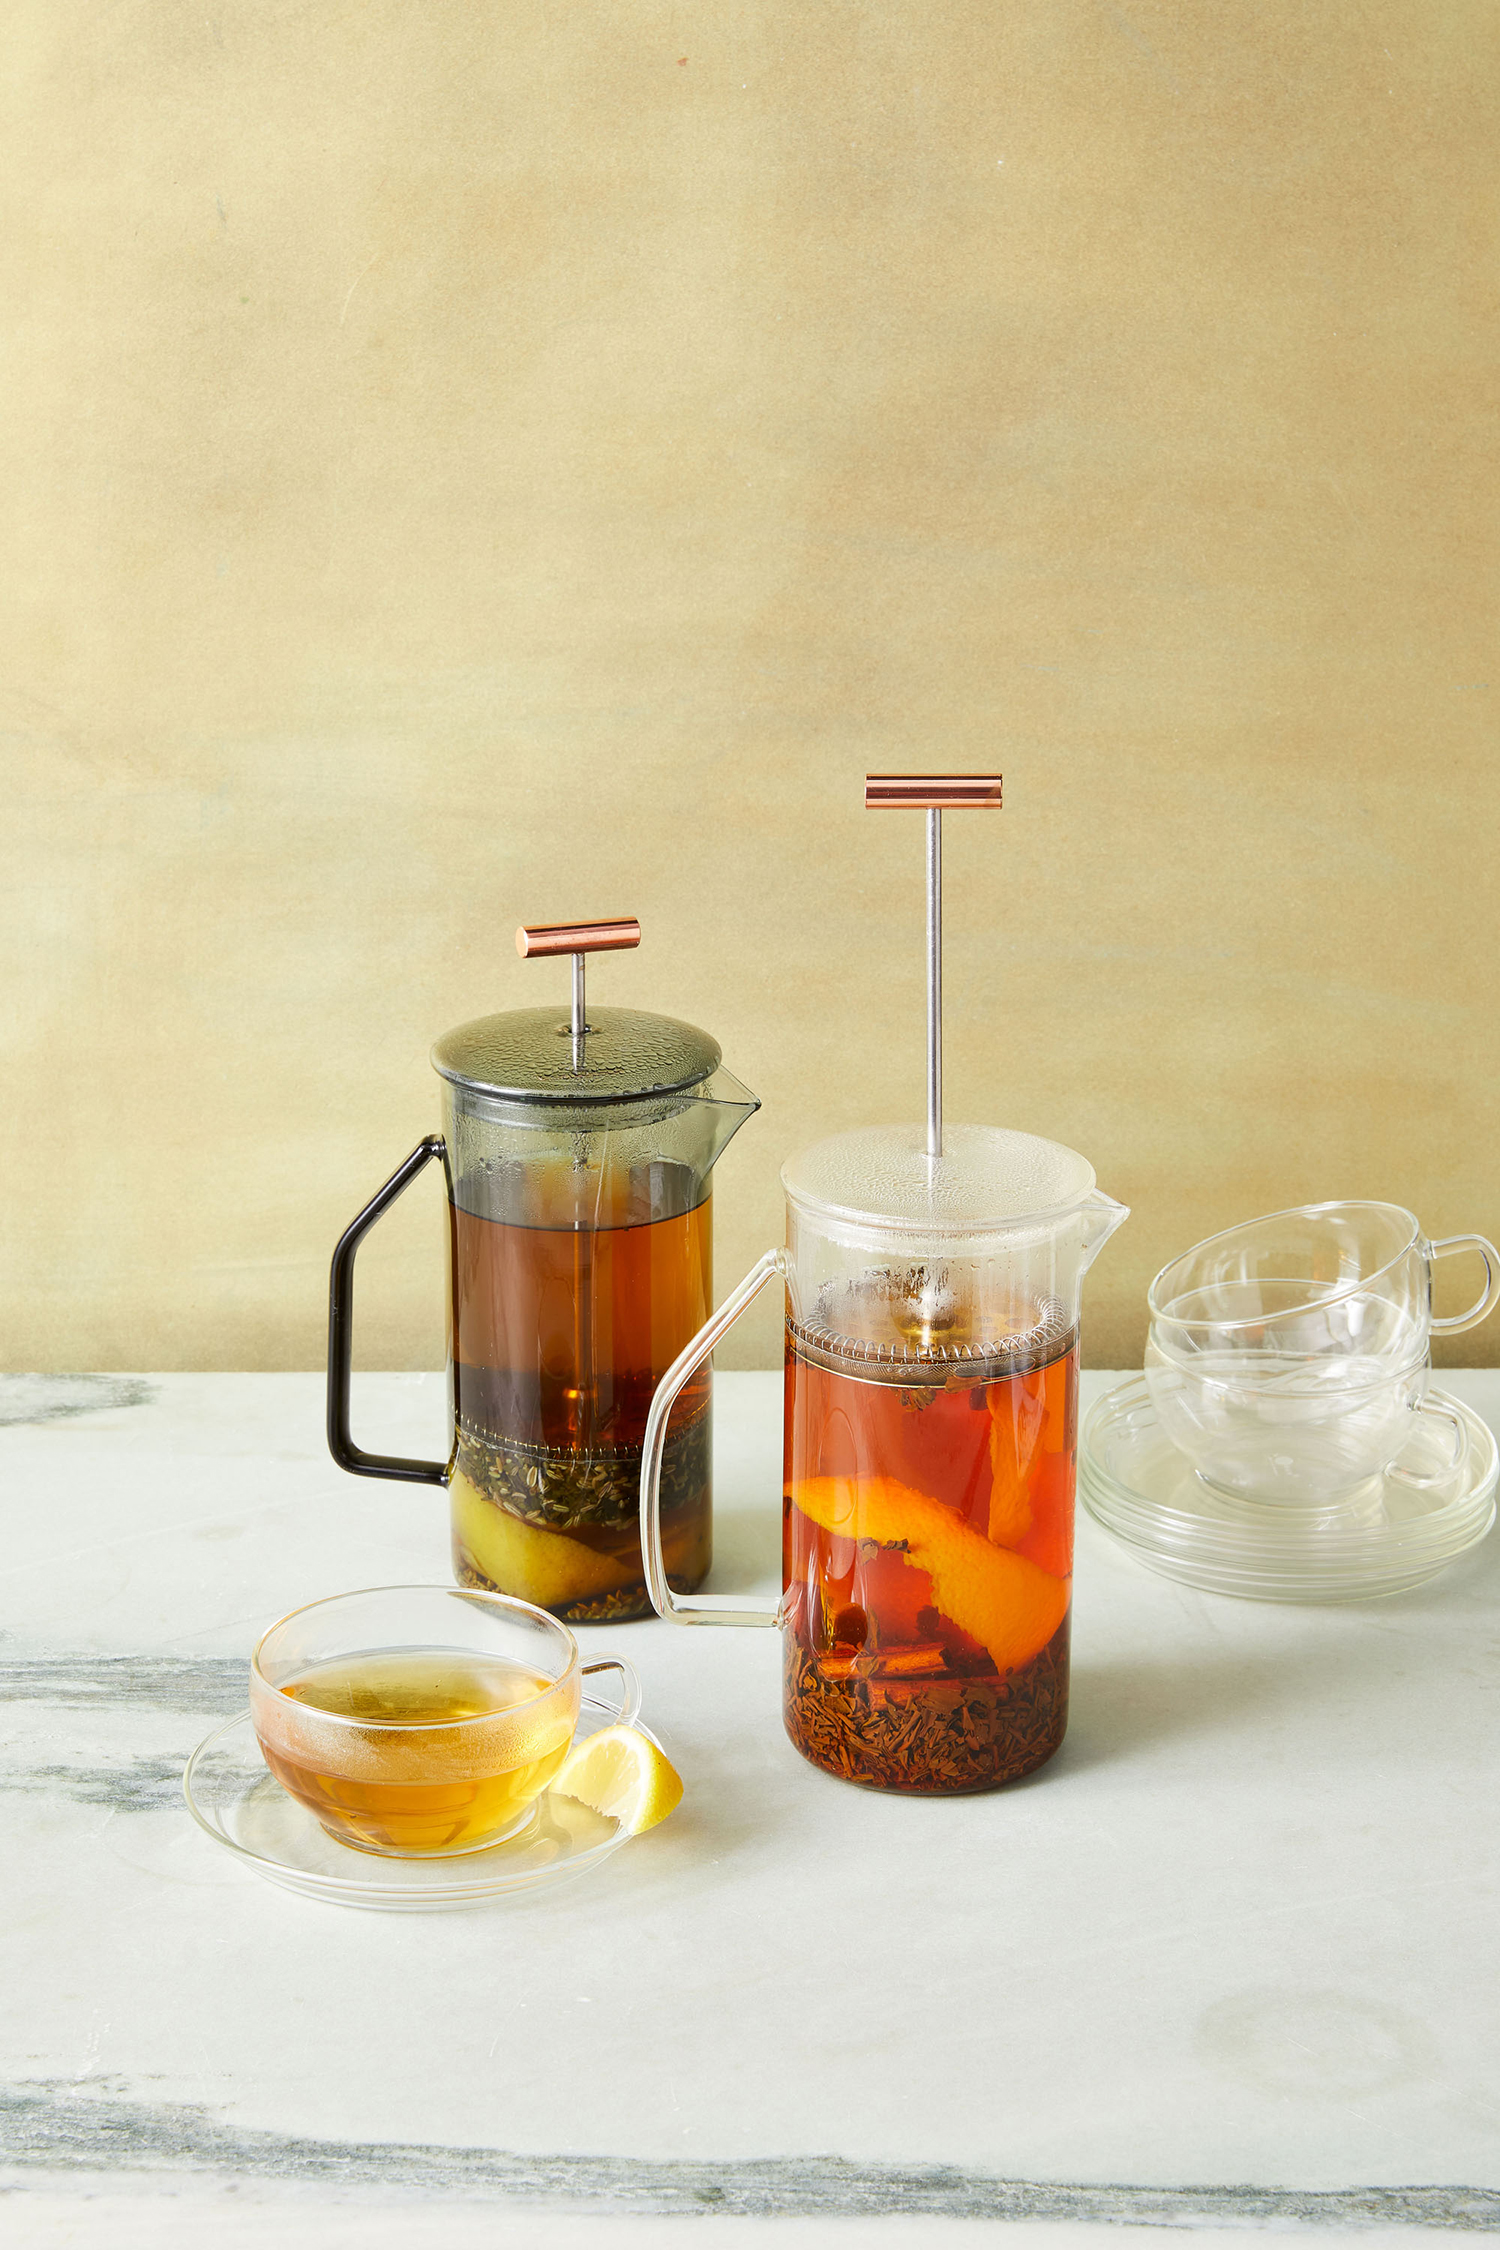 citrus mint and spicy assam tea in french press